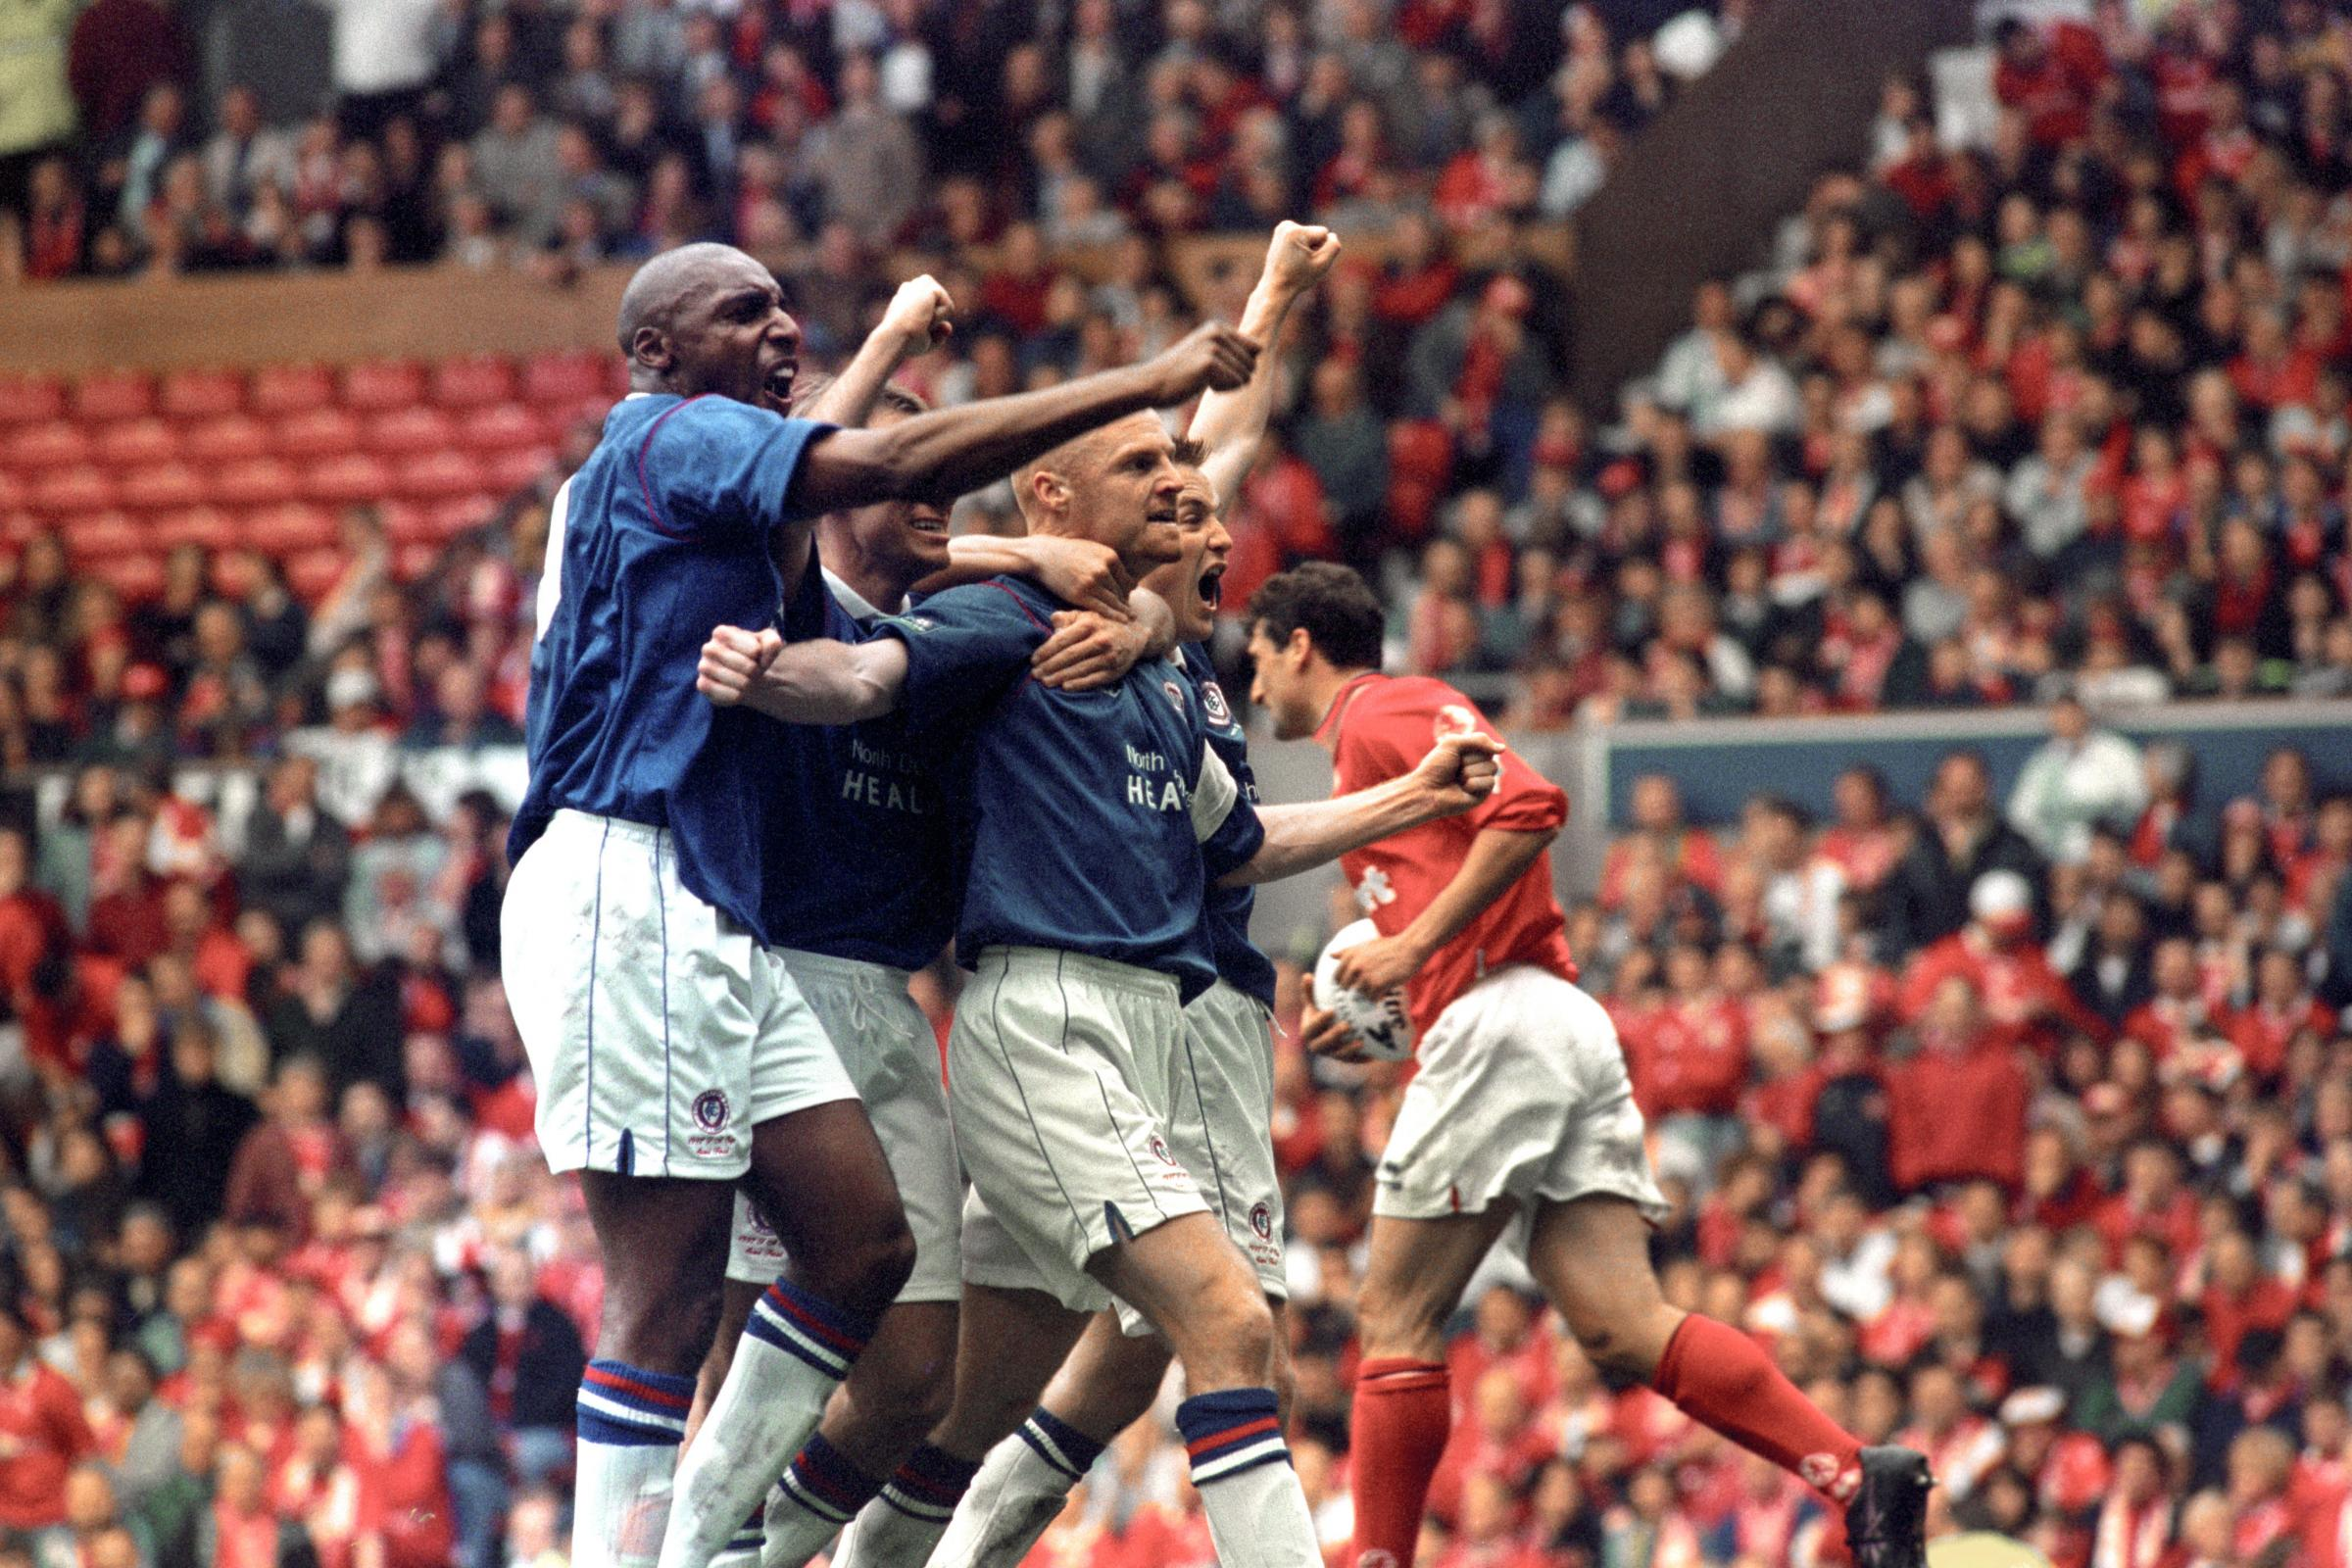 Sean Dyche, centre, celebrates with team-mates after scoring in Chesterfield's FA Cup semi-final with Middlesbrough